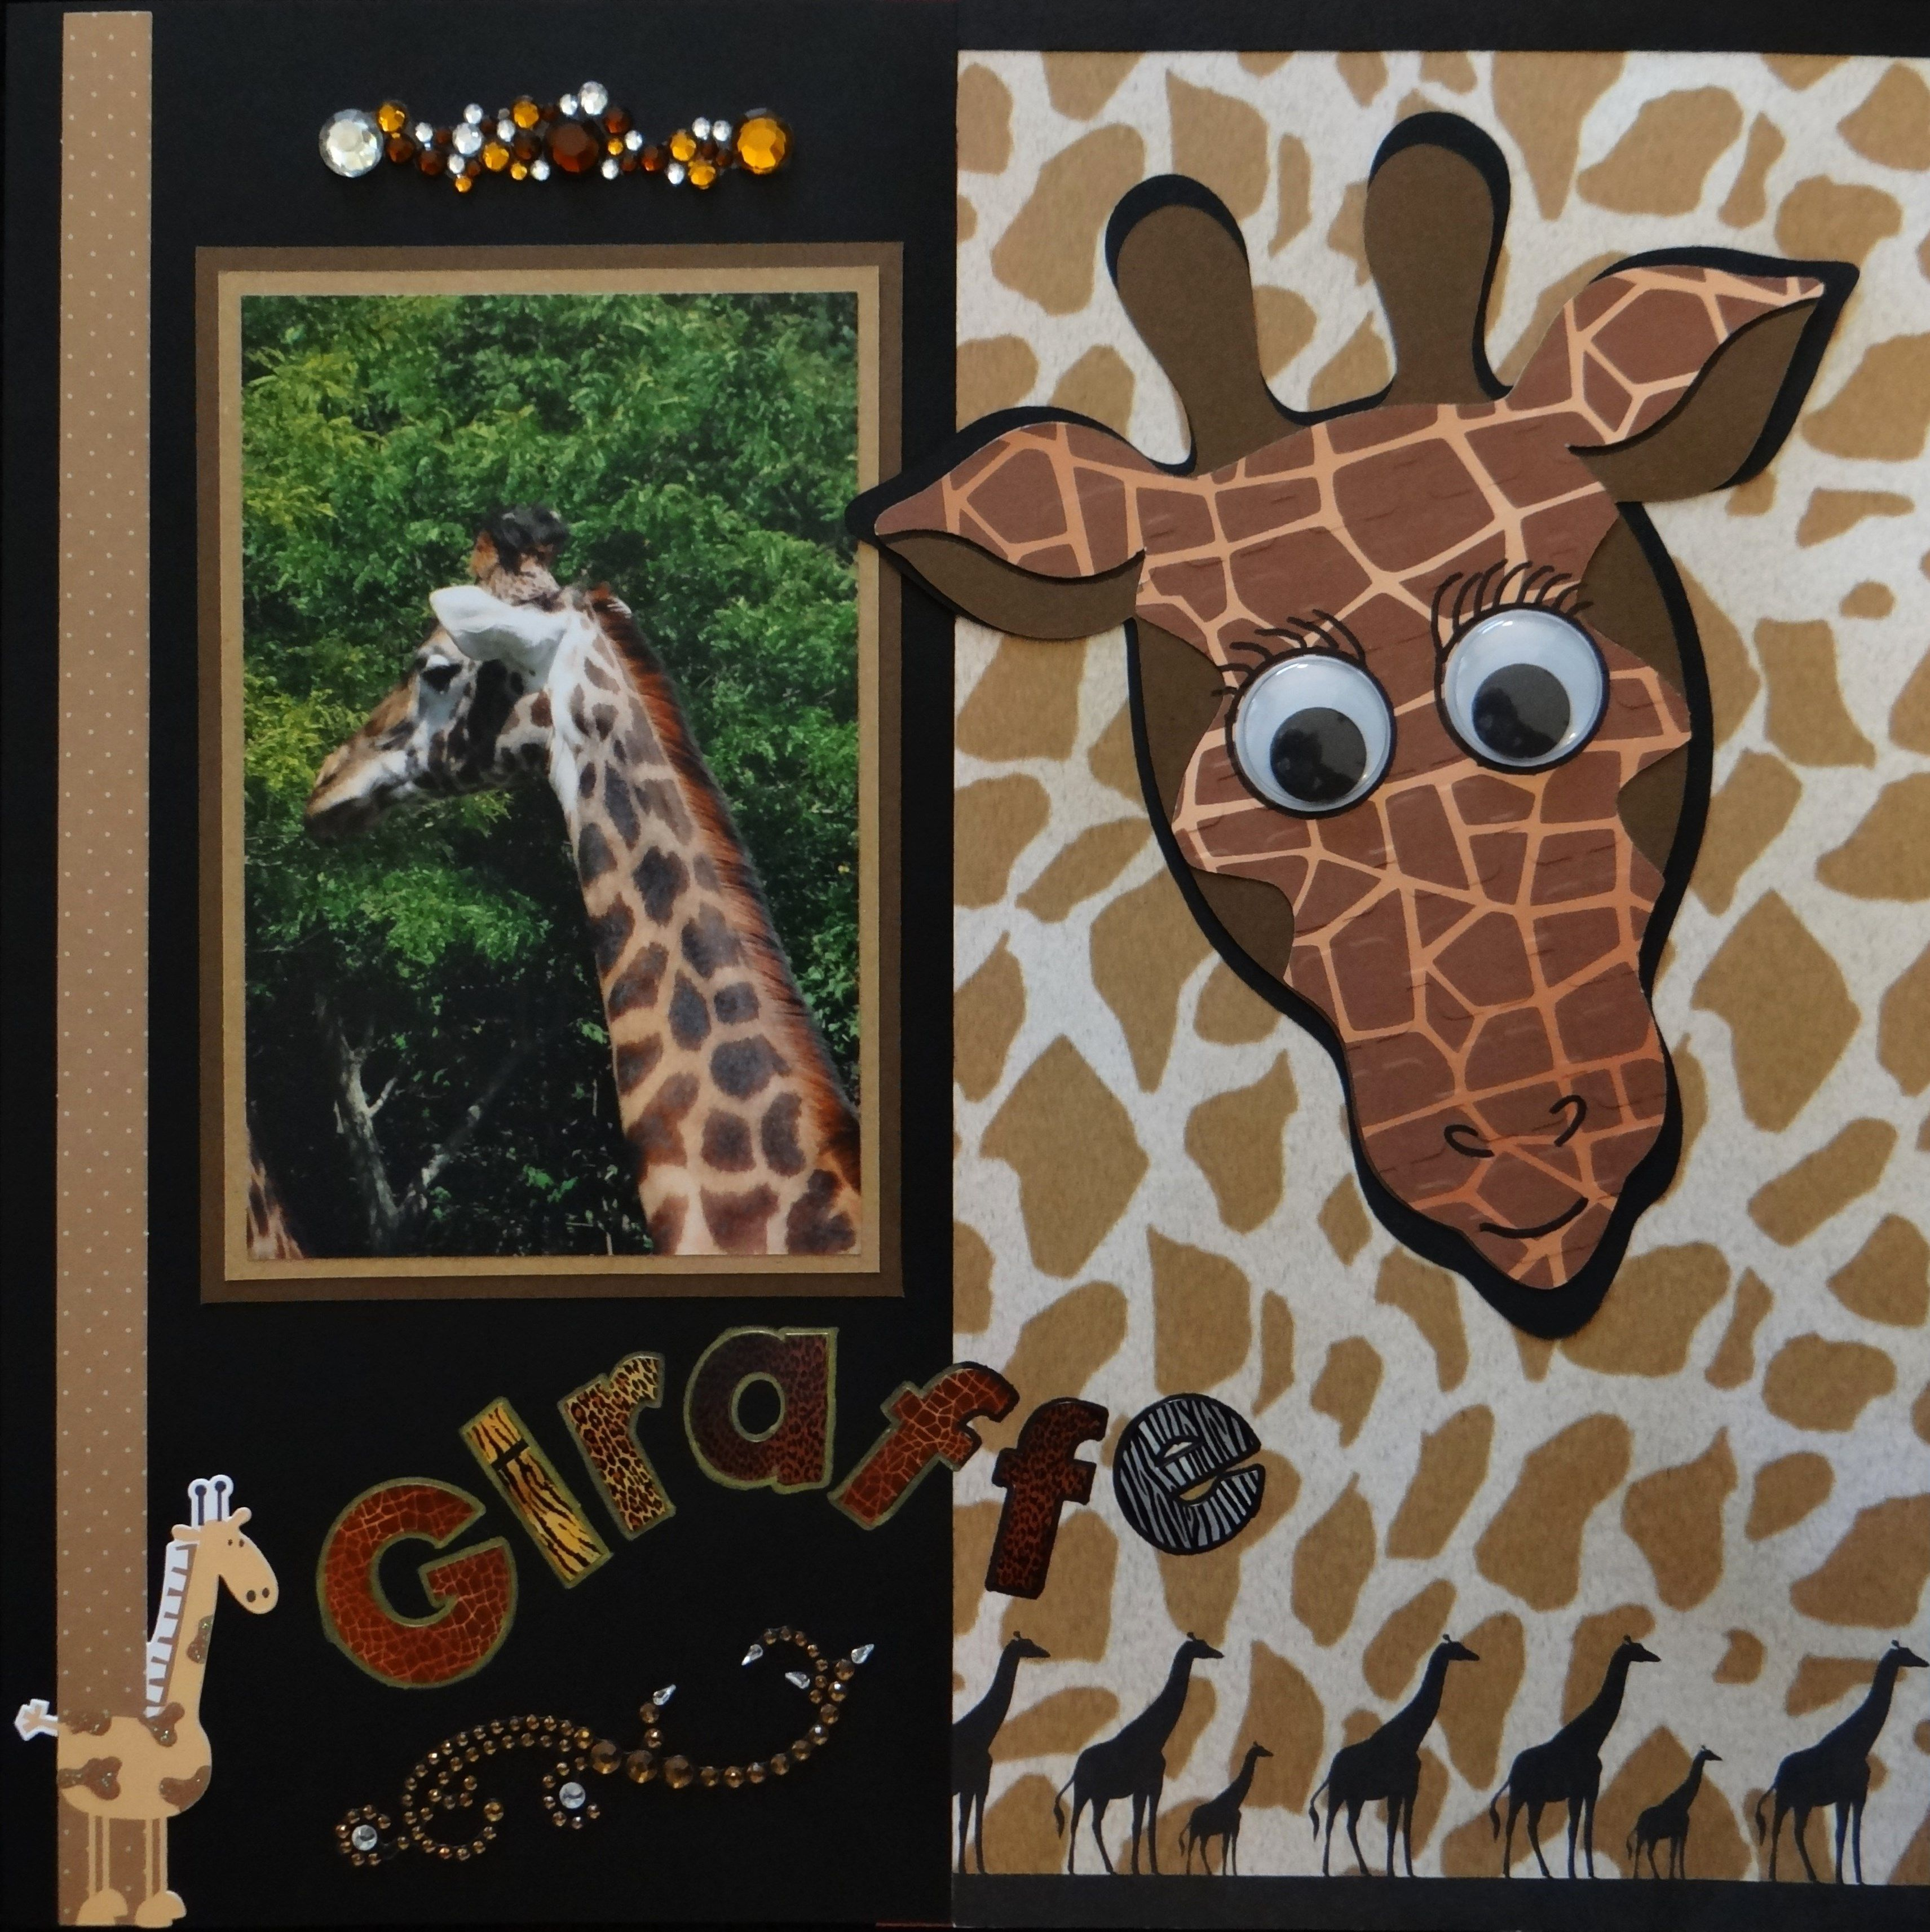 Zoo animal scrapbook ideas - You Will Find Lots Of Little Girl Scrapbook Ideas In The Album Also Great Garden And Zoo Scrapbook Ideas All Made With My Cricut Machine Enjoy My Gallery